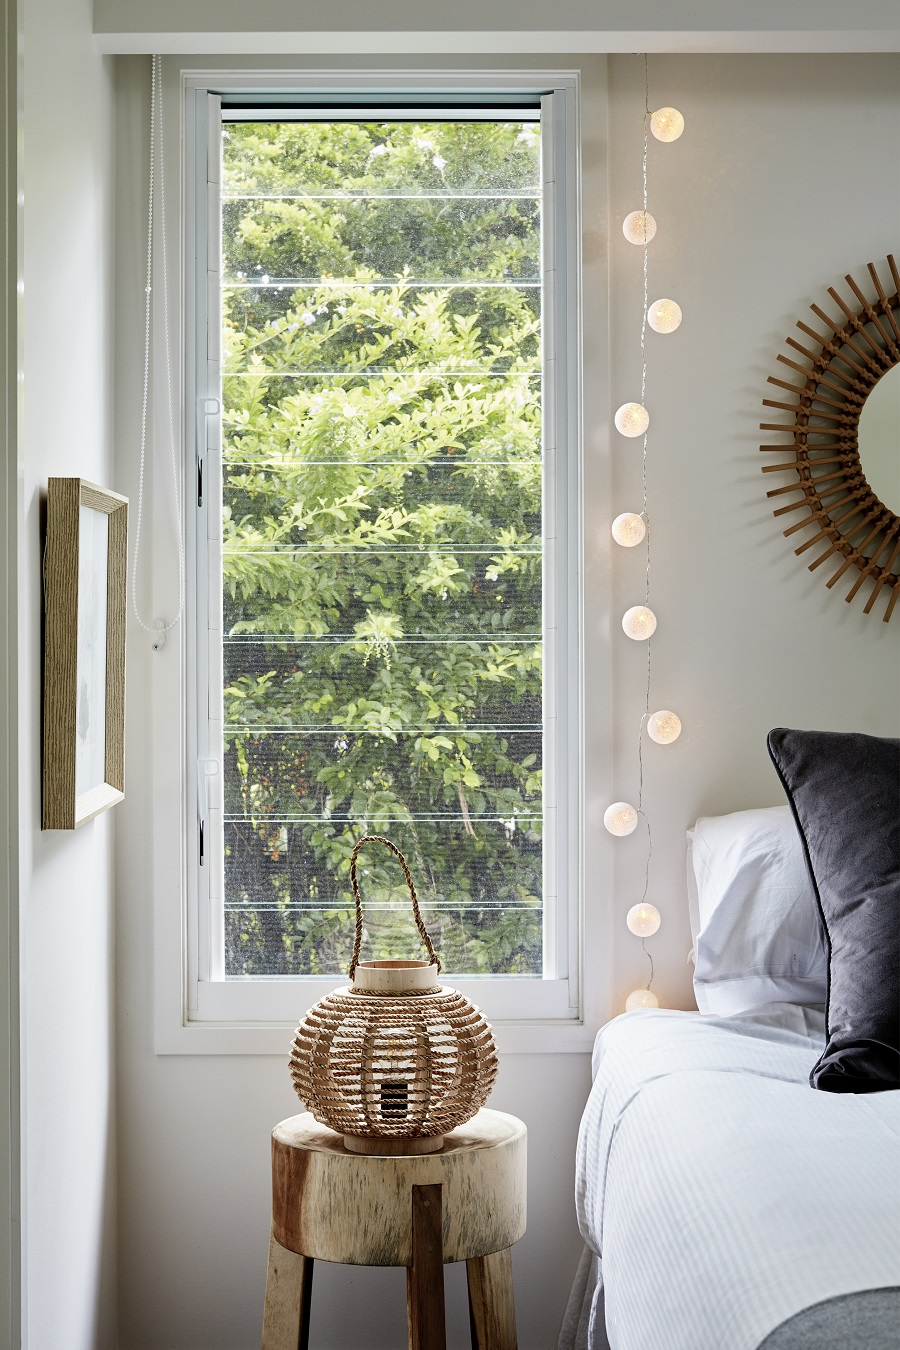 Fairy Lights are not just for Christmas - use as a nightlight in the bedroom